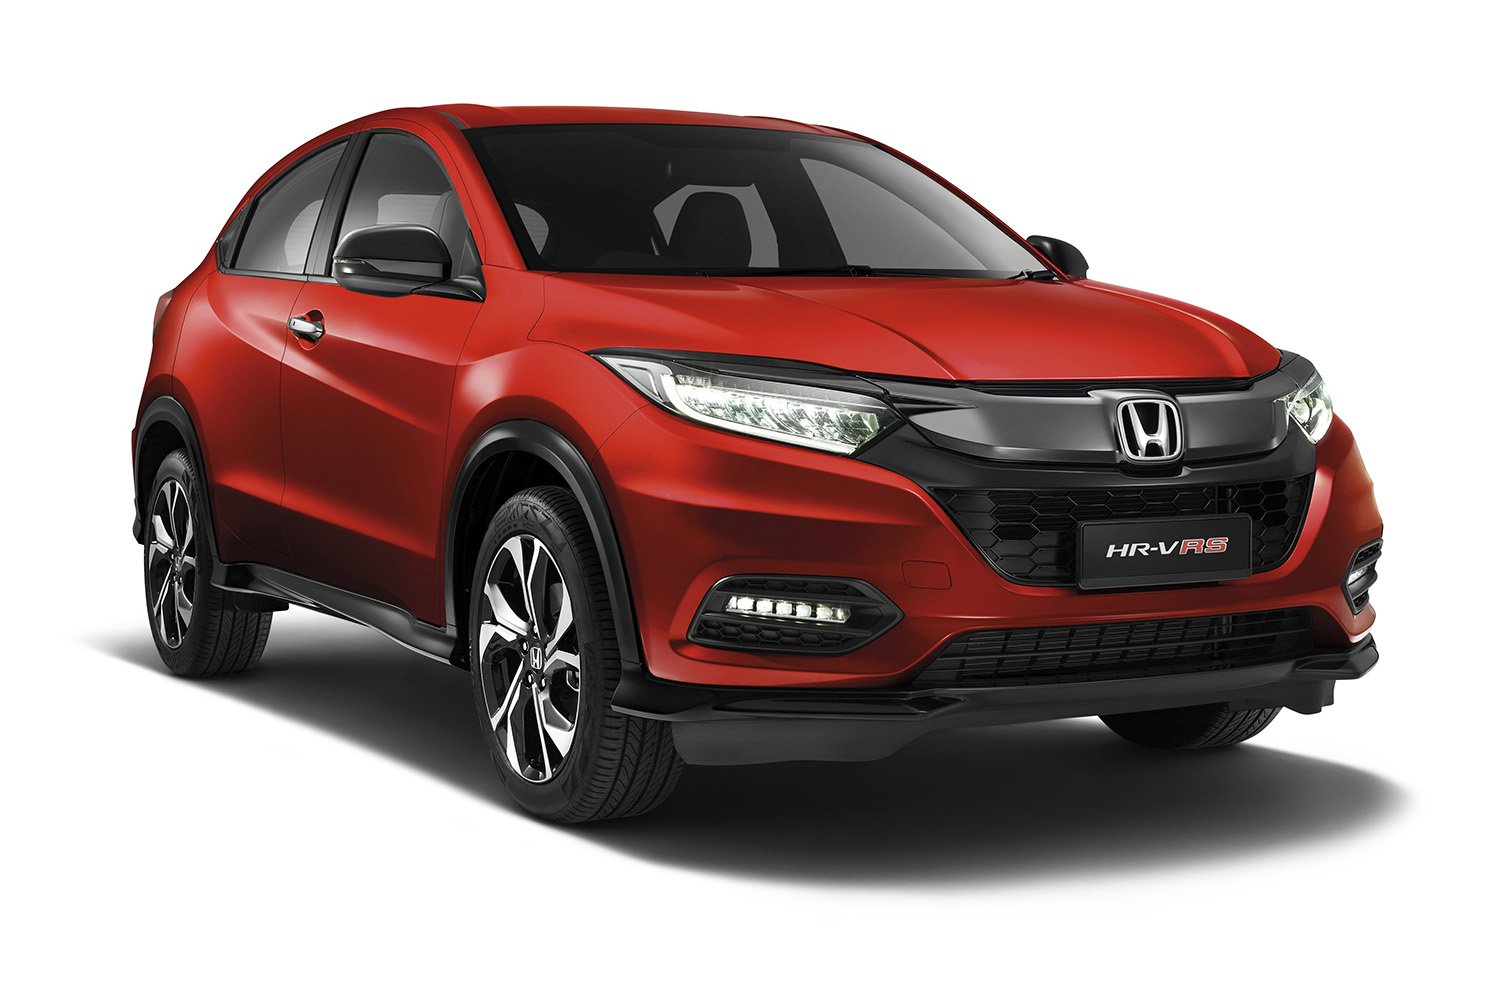 HONDA MALAYSIA MAINTAINS NO. 2* POSITION IN OVERALL TIV FOR 1H 2019